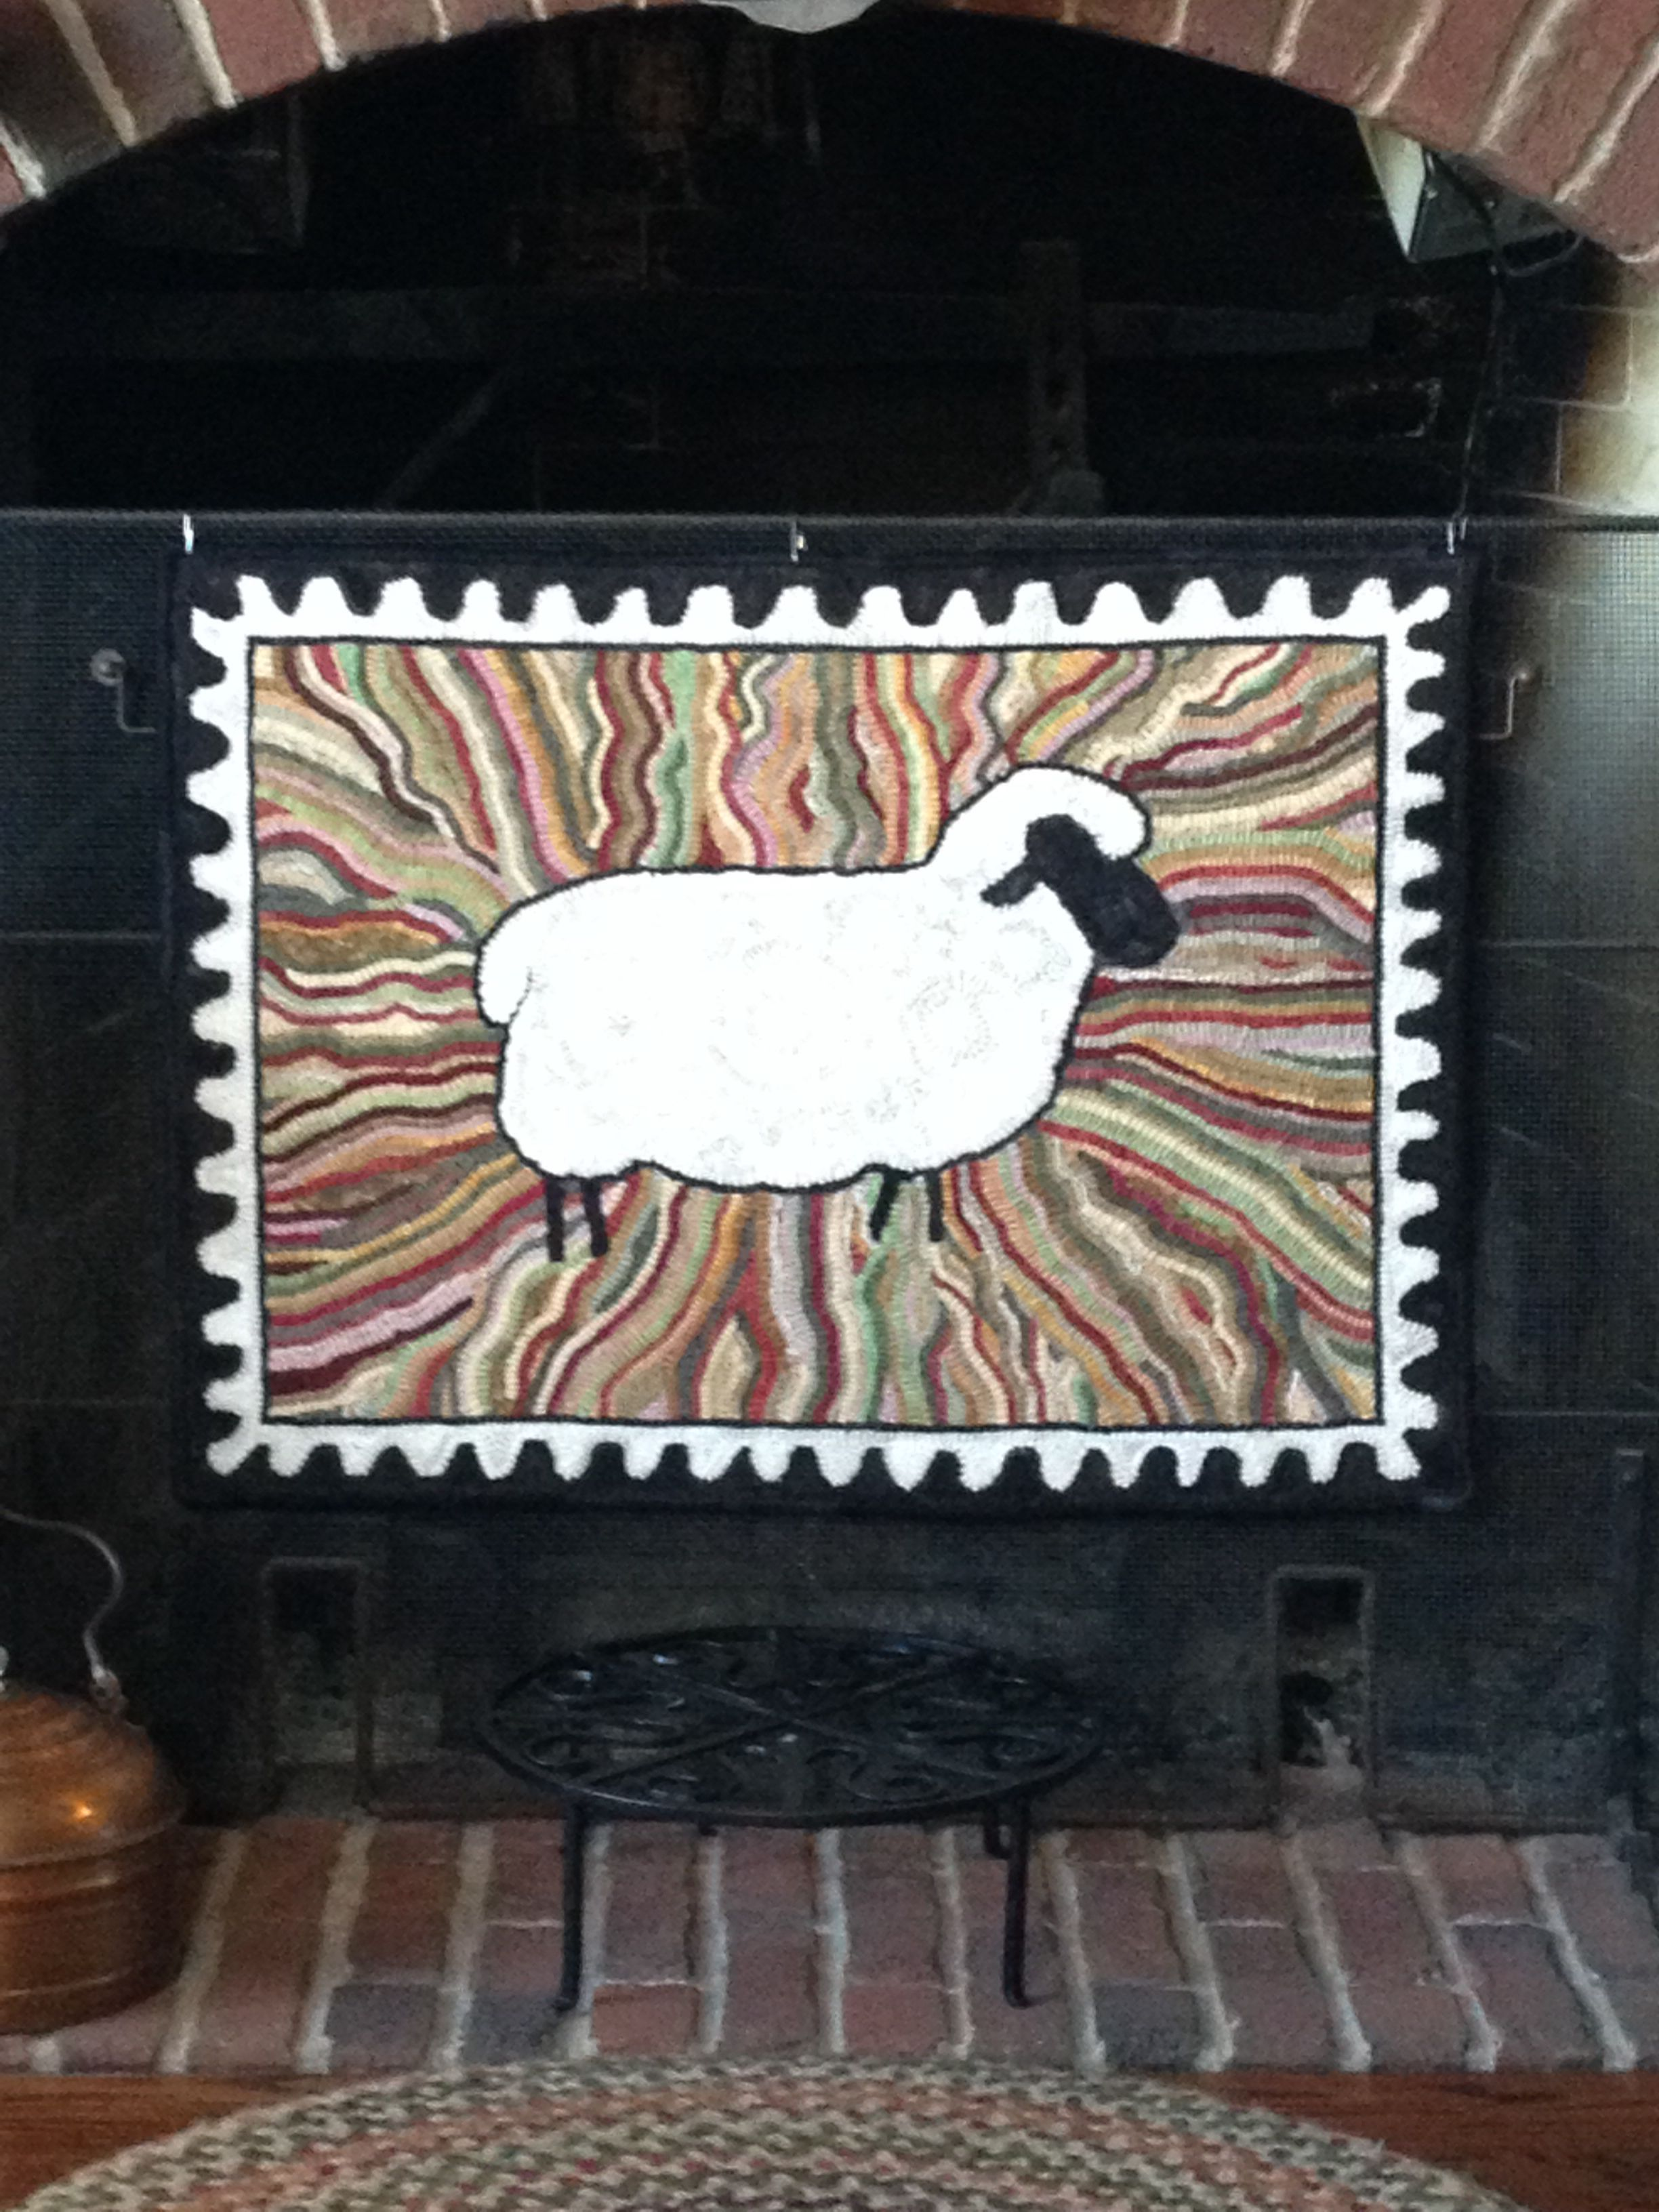 Sunburst Sheep designed and hooked by Wanda McCay.